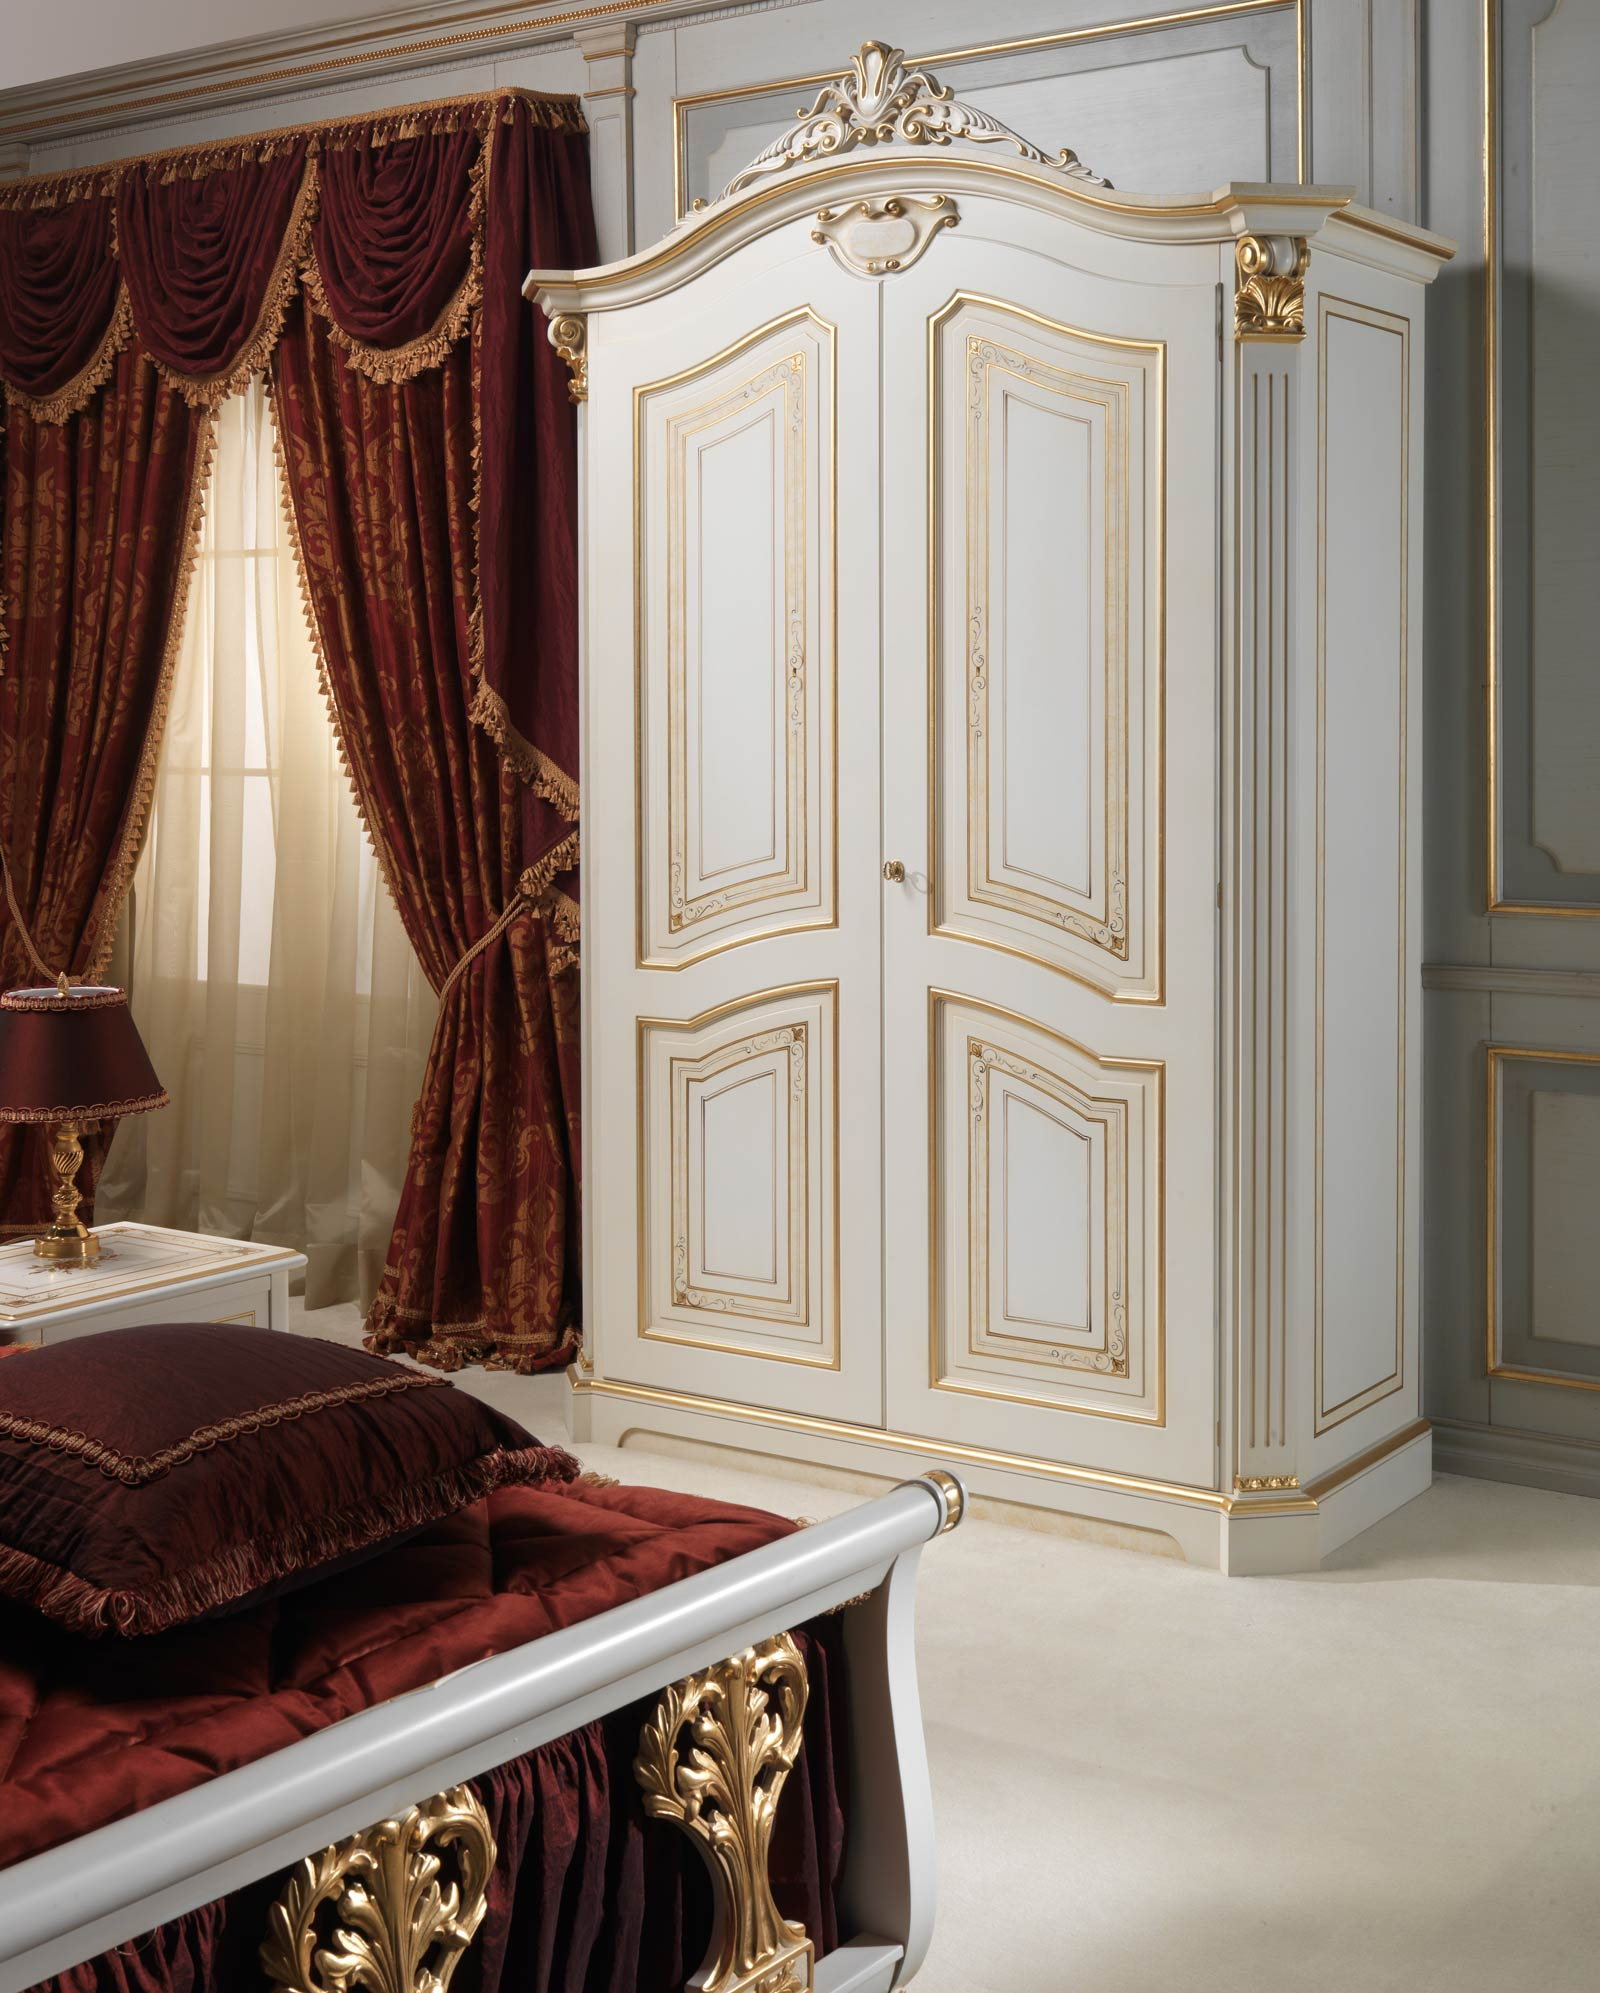 Classic Rubens 18th Century French Style Bedroom Wardrobe